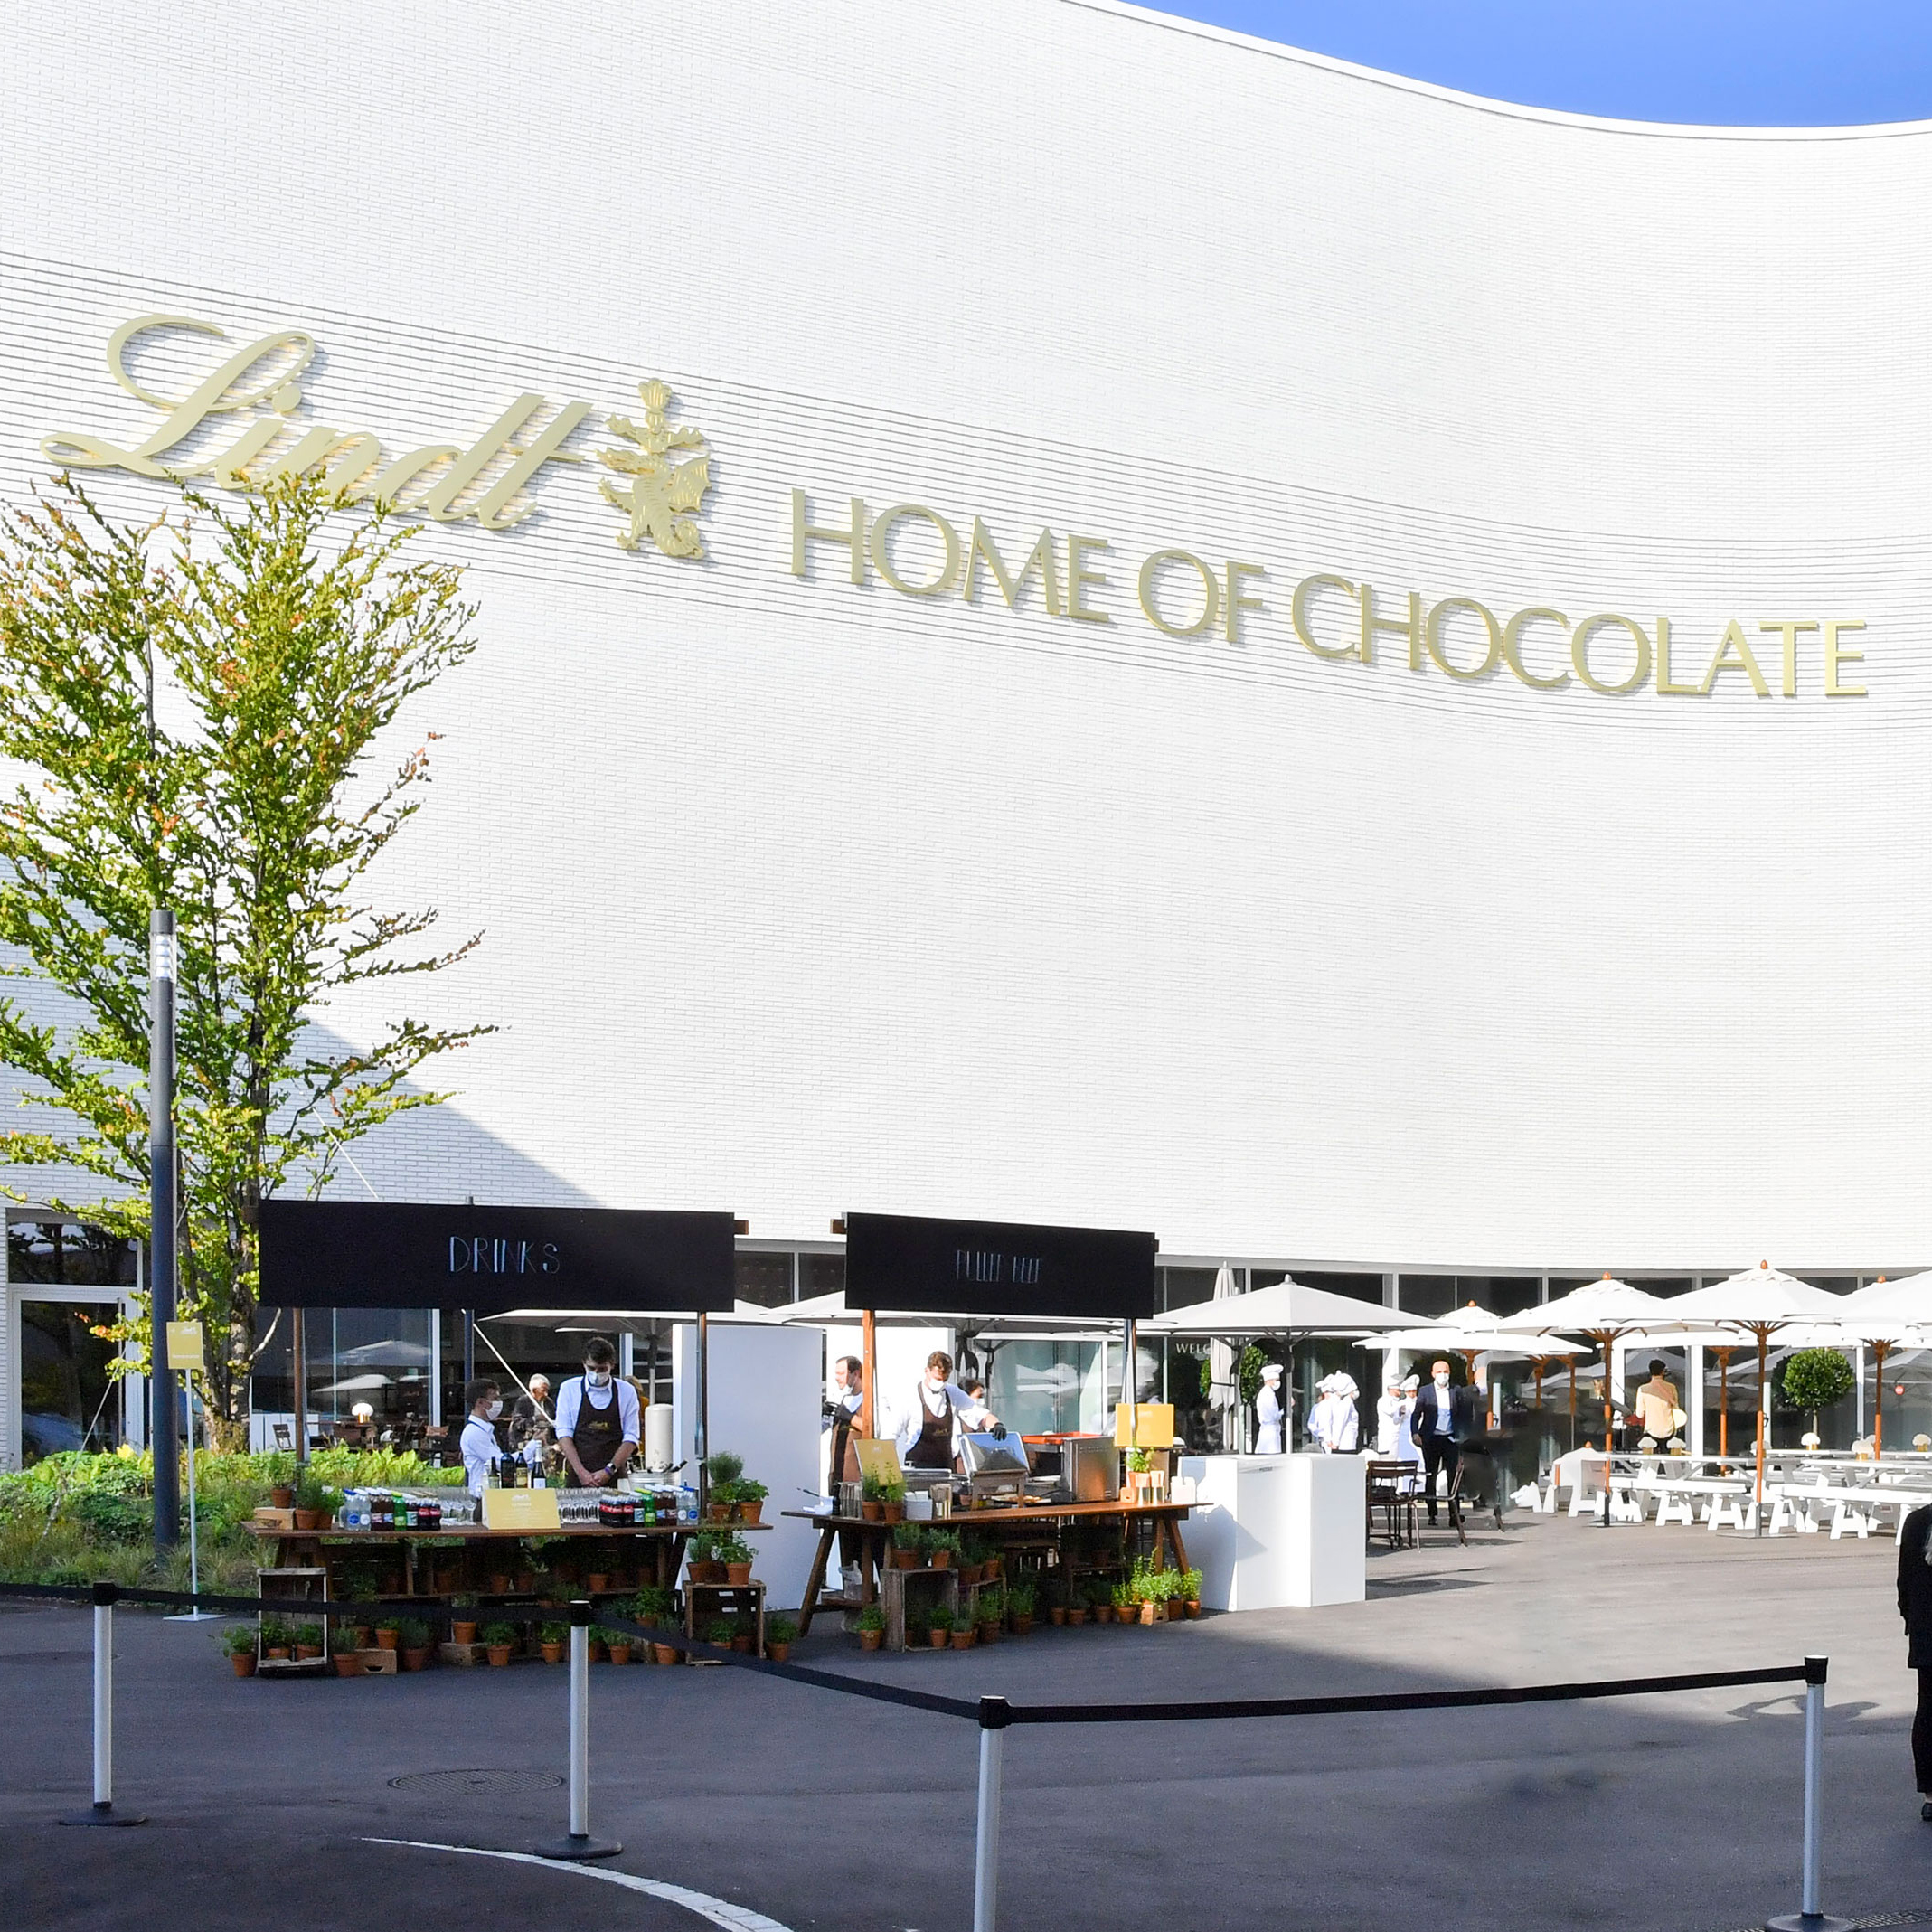 Lindt - Home of Chocolate